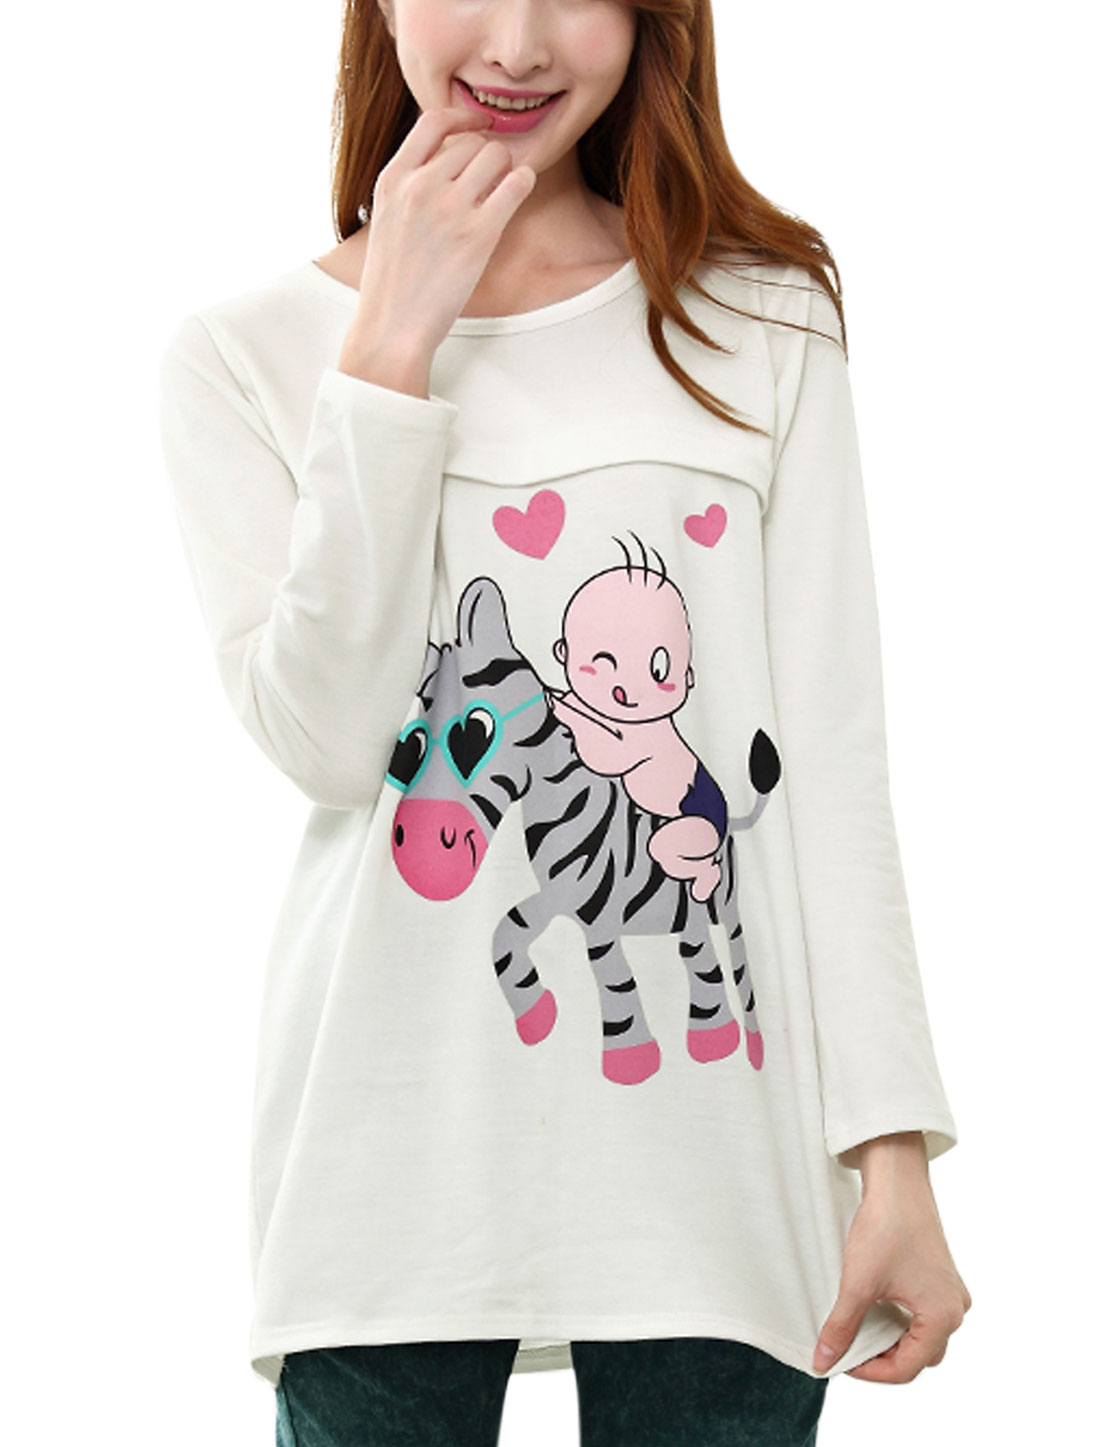 XK22 Maternity Round Neck Cartoon Prints Long Sleeve Tunic T-shirt White XL/L (US 12)